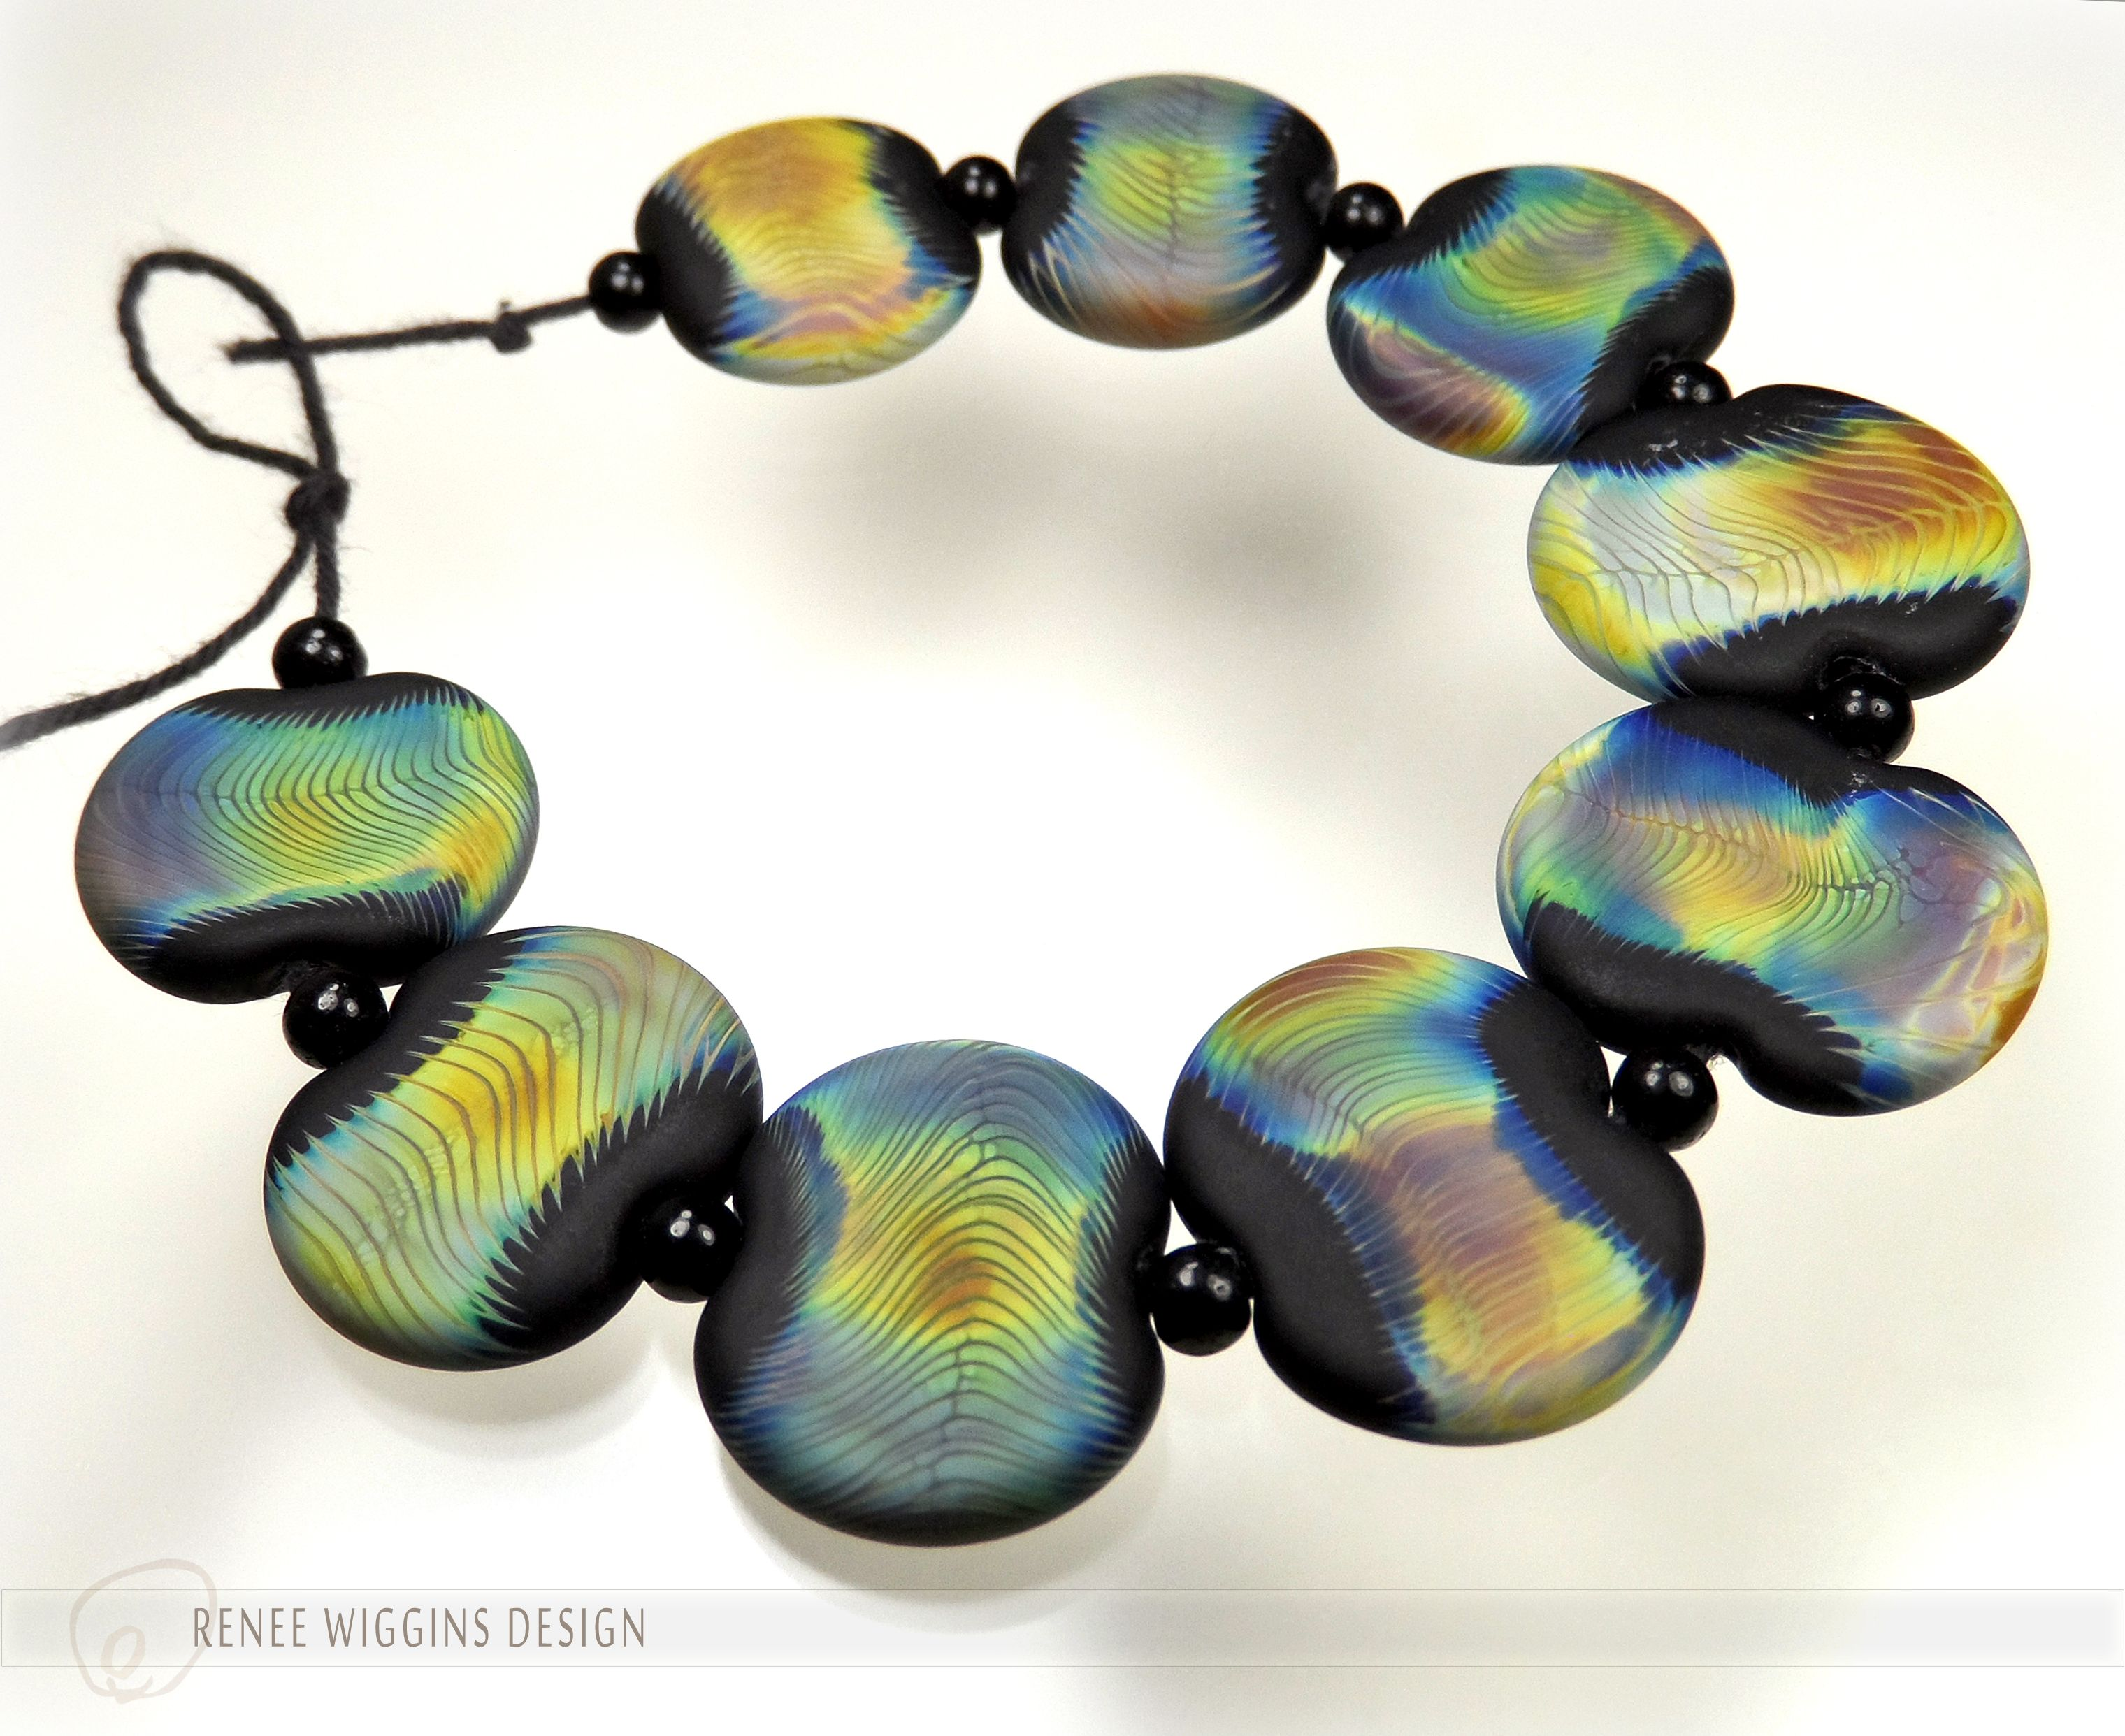 renee wiggins design solar winds set of artisanal beads